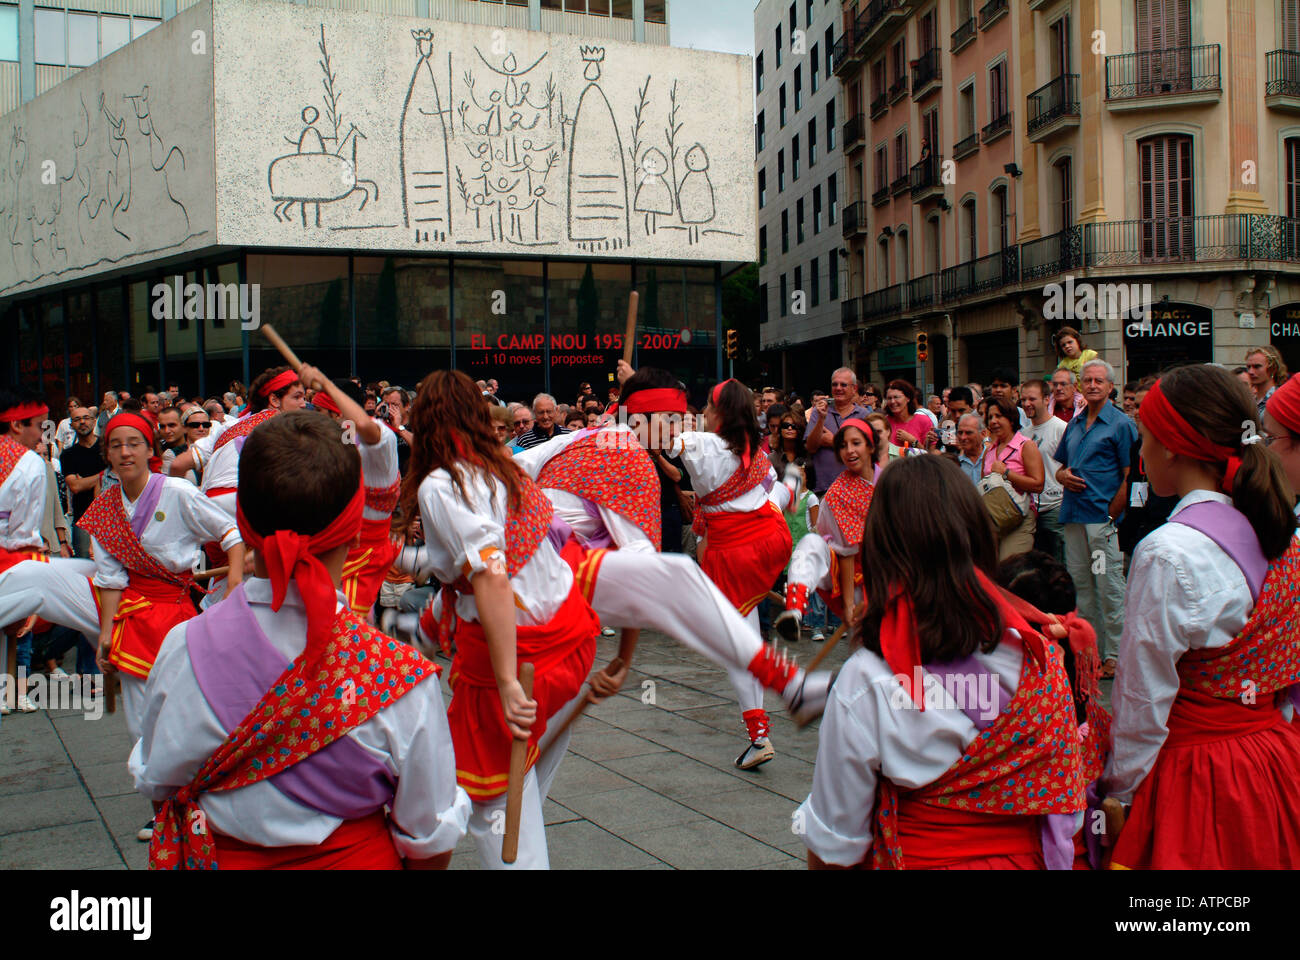 Folklore Dancing Barcelona Spain With Outdoor Artwork By Pablo Picasso In Background